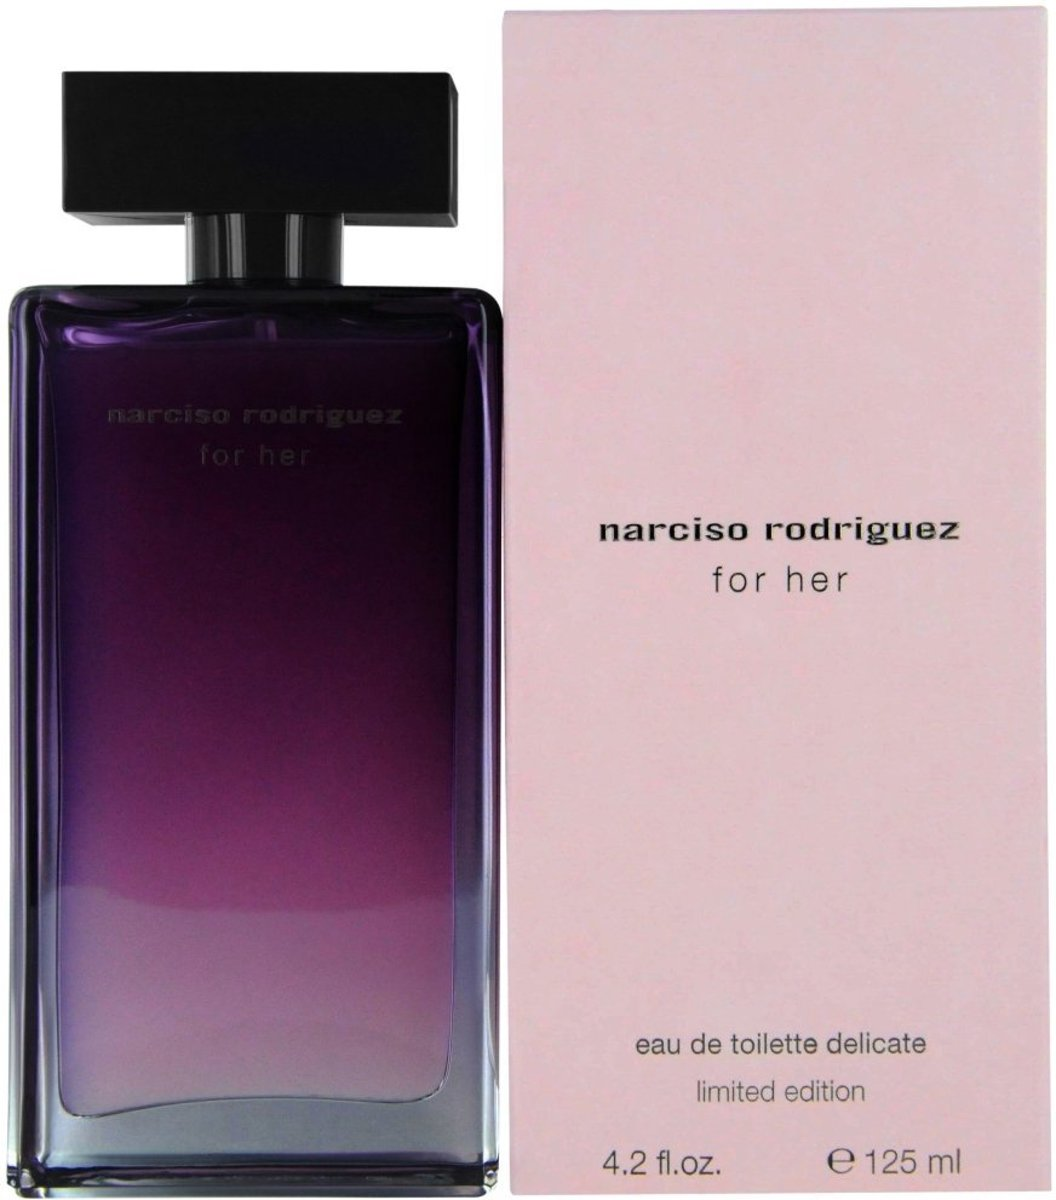 Narciso Rodriquez for her EDT Delicate Lim. Edition 125 ml